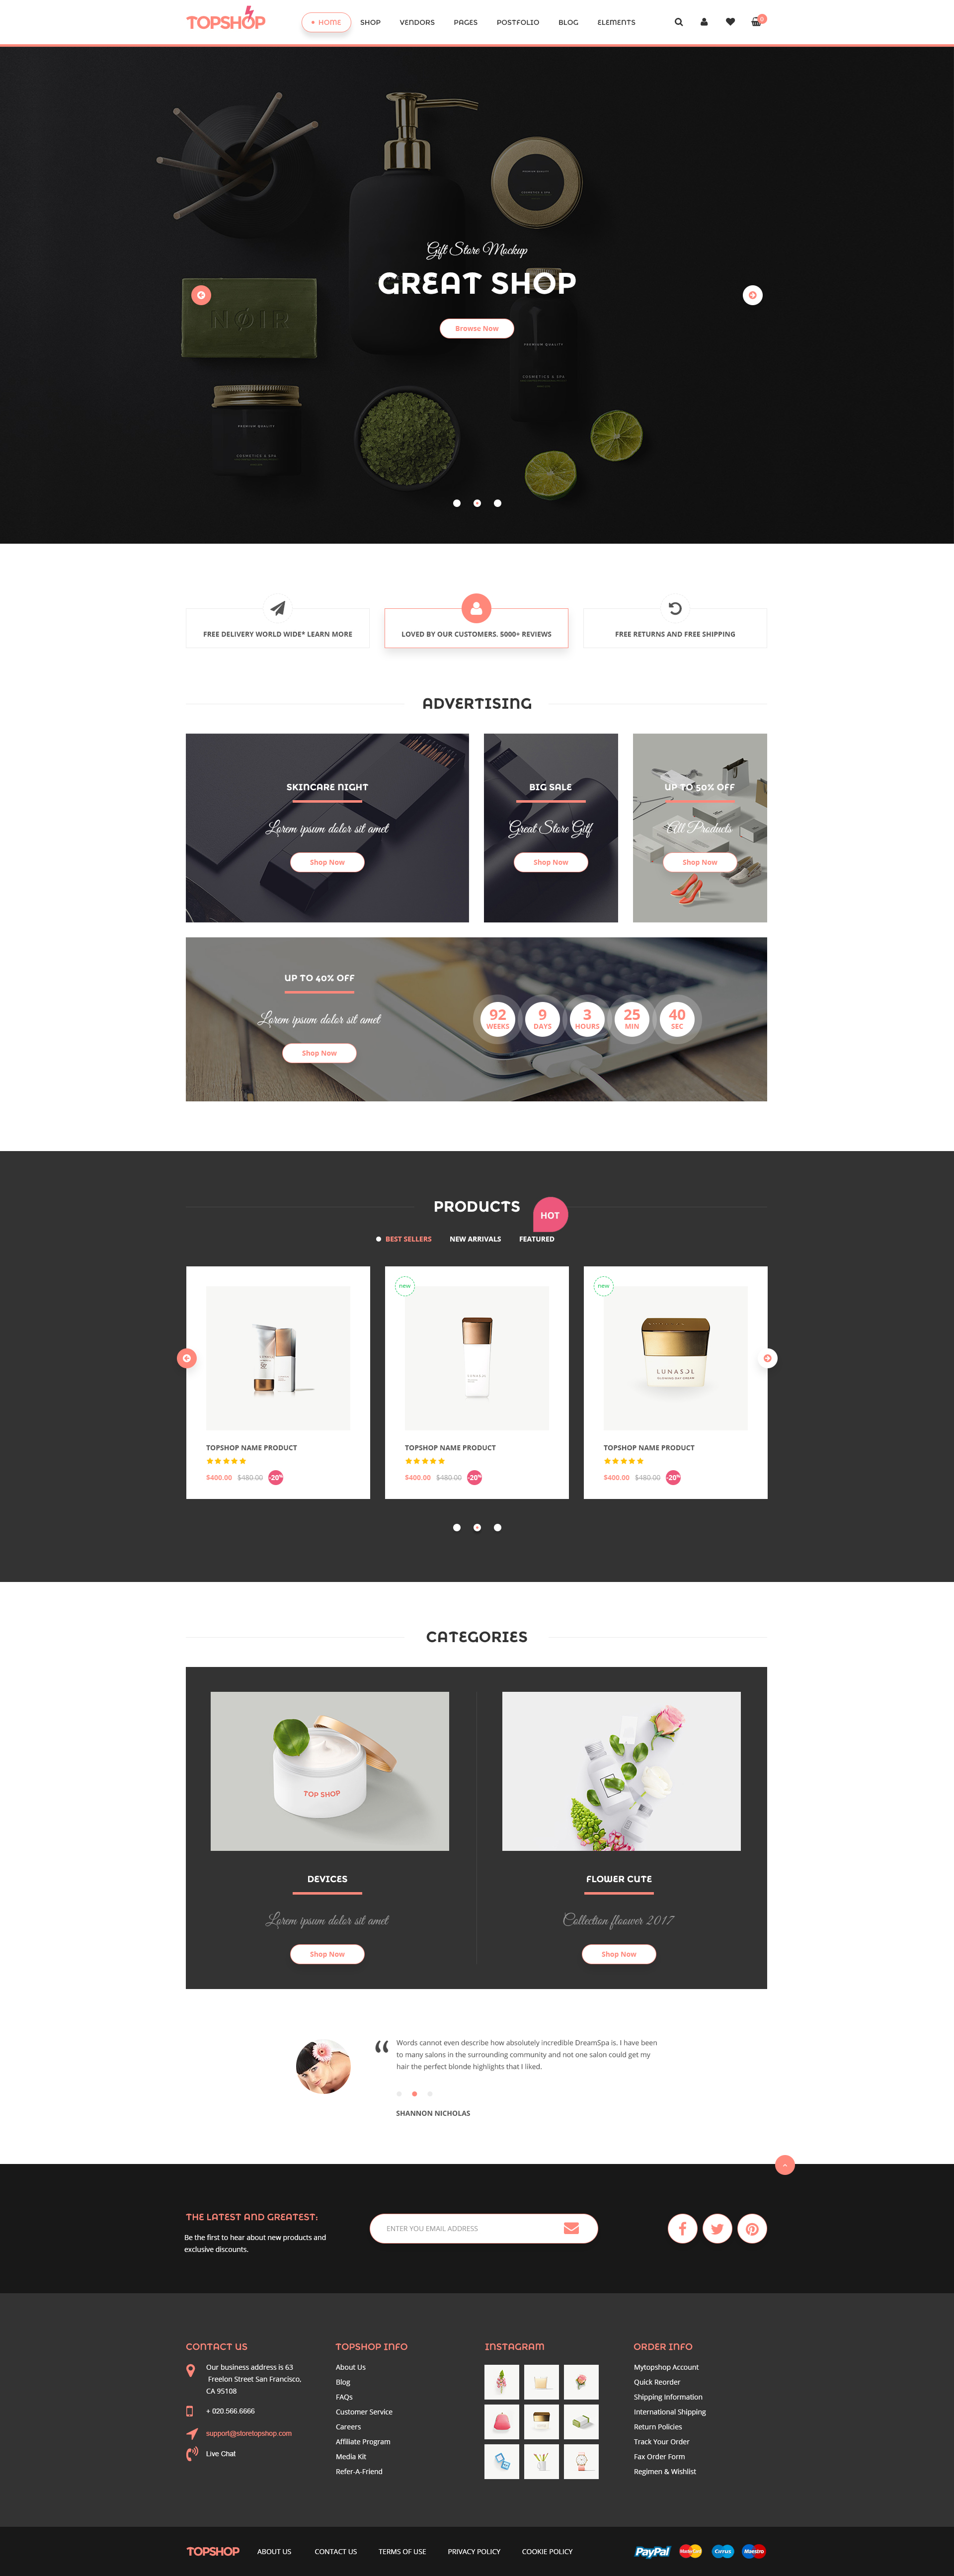 Topshop eCommerce - Html Template by creativemarket247 | ThemeForest